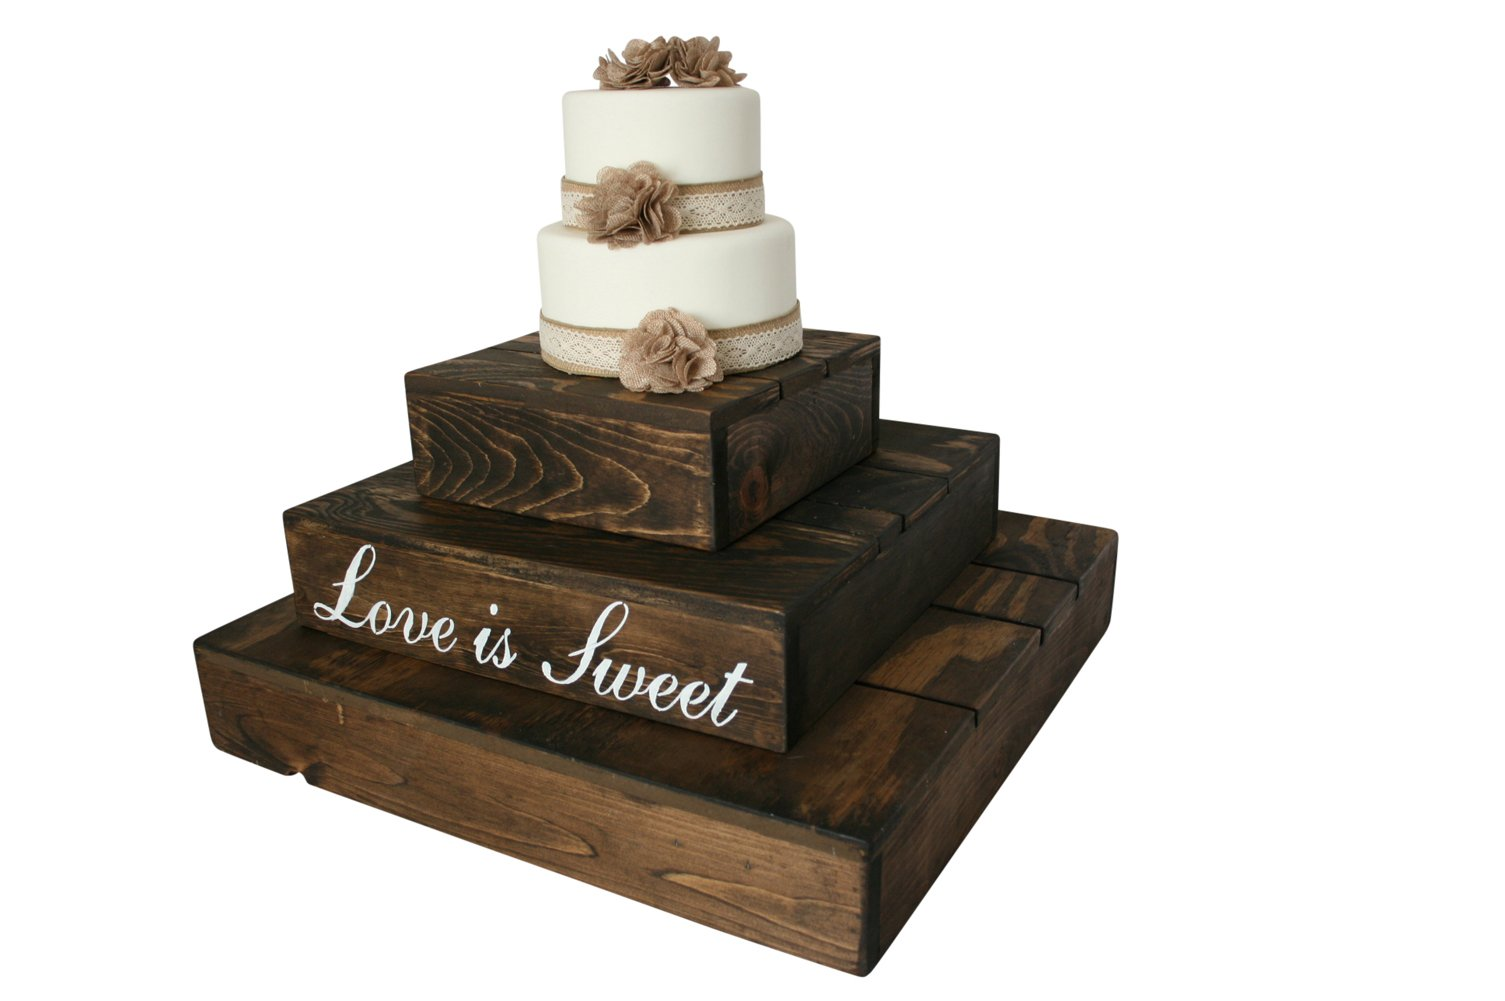 Rustic Wedding Country Barn Farmhouse Wedding Cake Cupcake Stand 3 Tier Rustic Wooden Country Cake Cupcake Stand (Dark Walnut) by Cleo Classic Designs (Image #1)